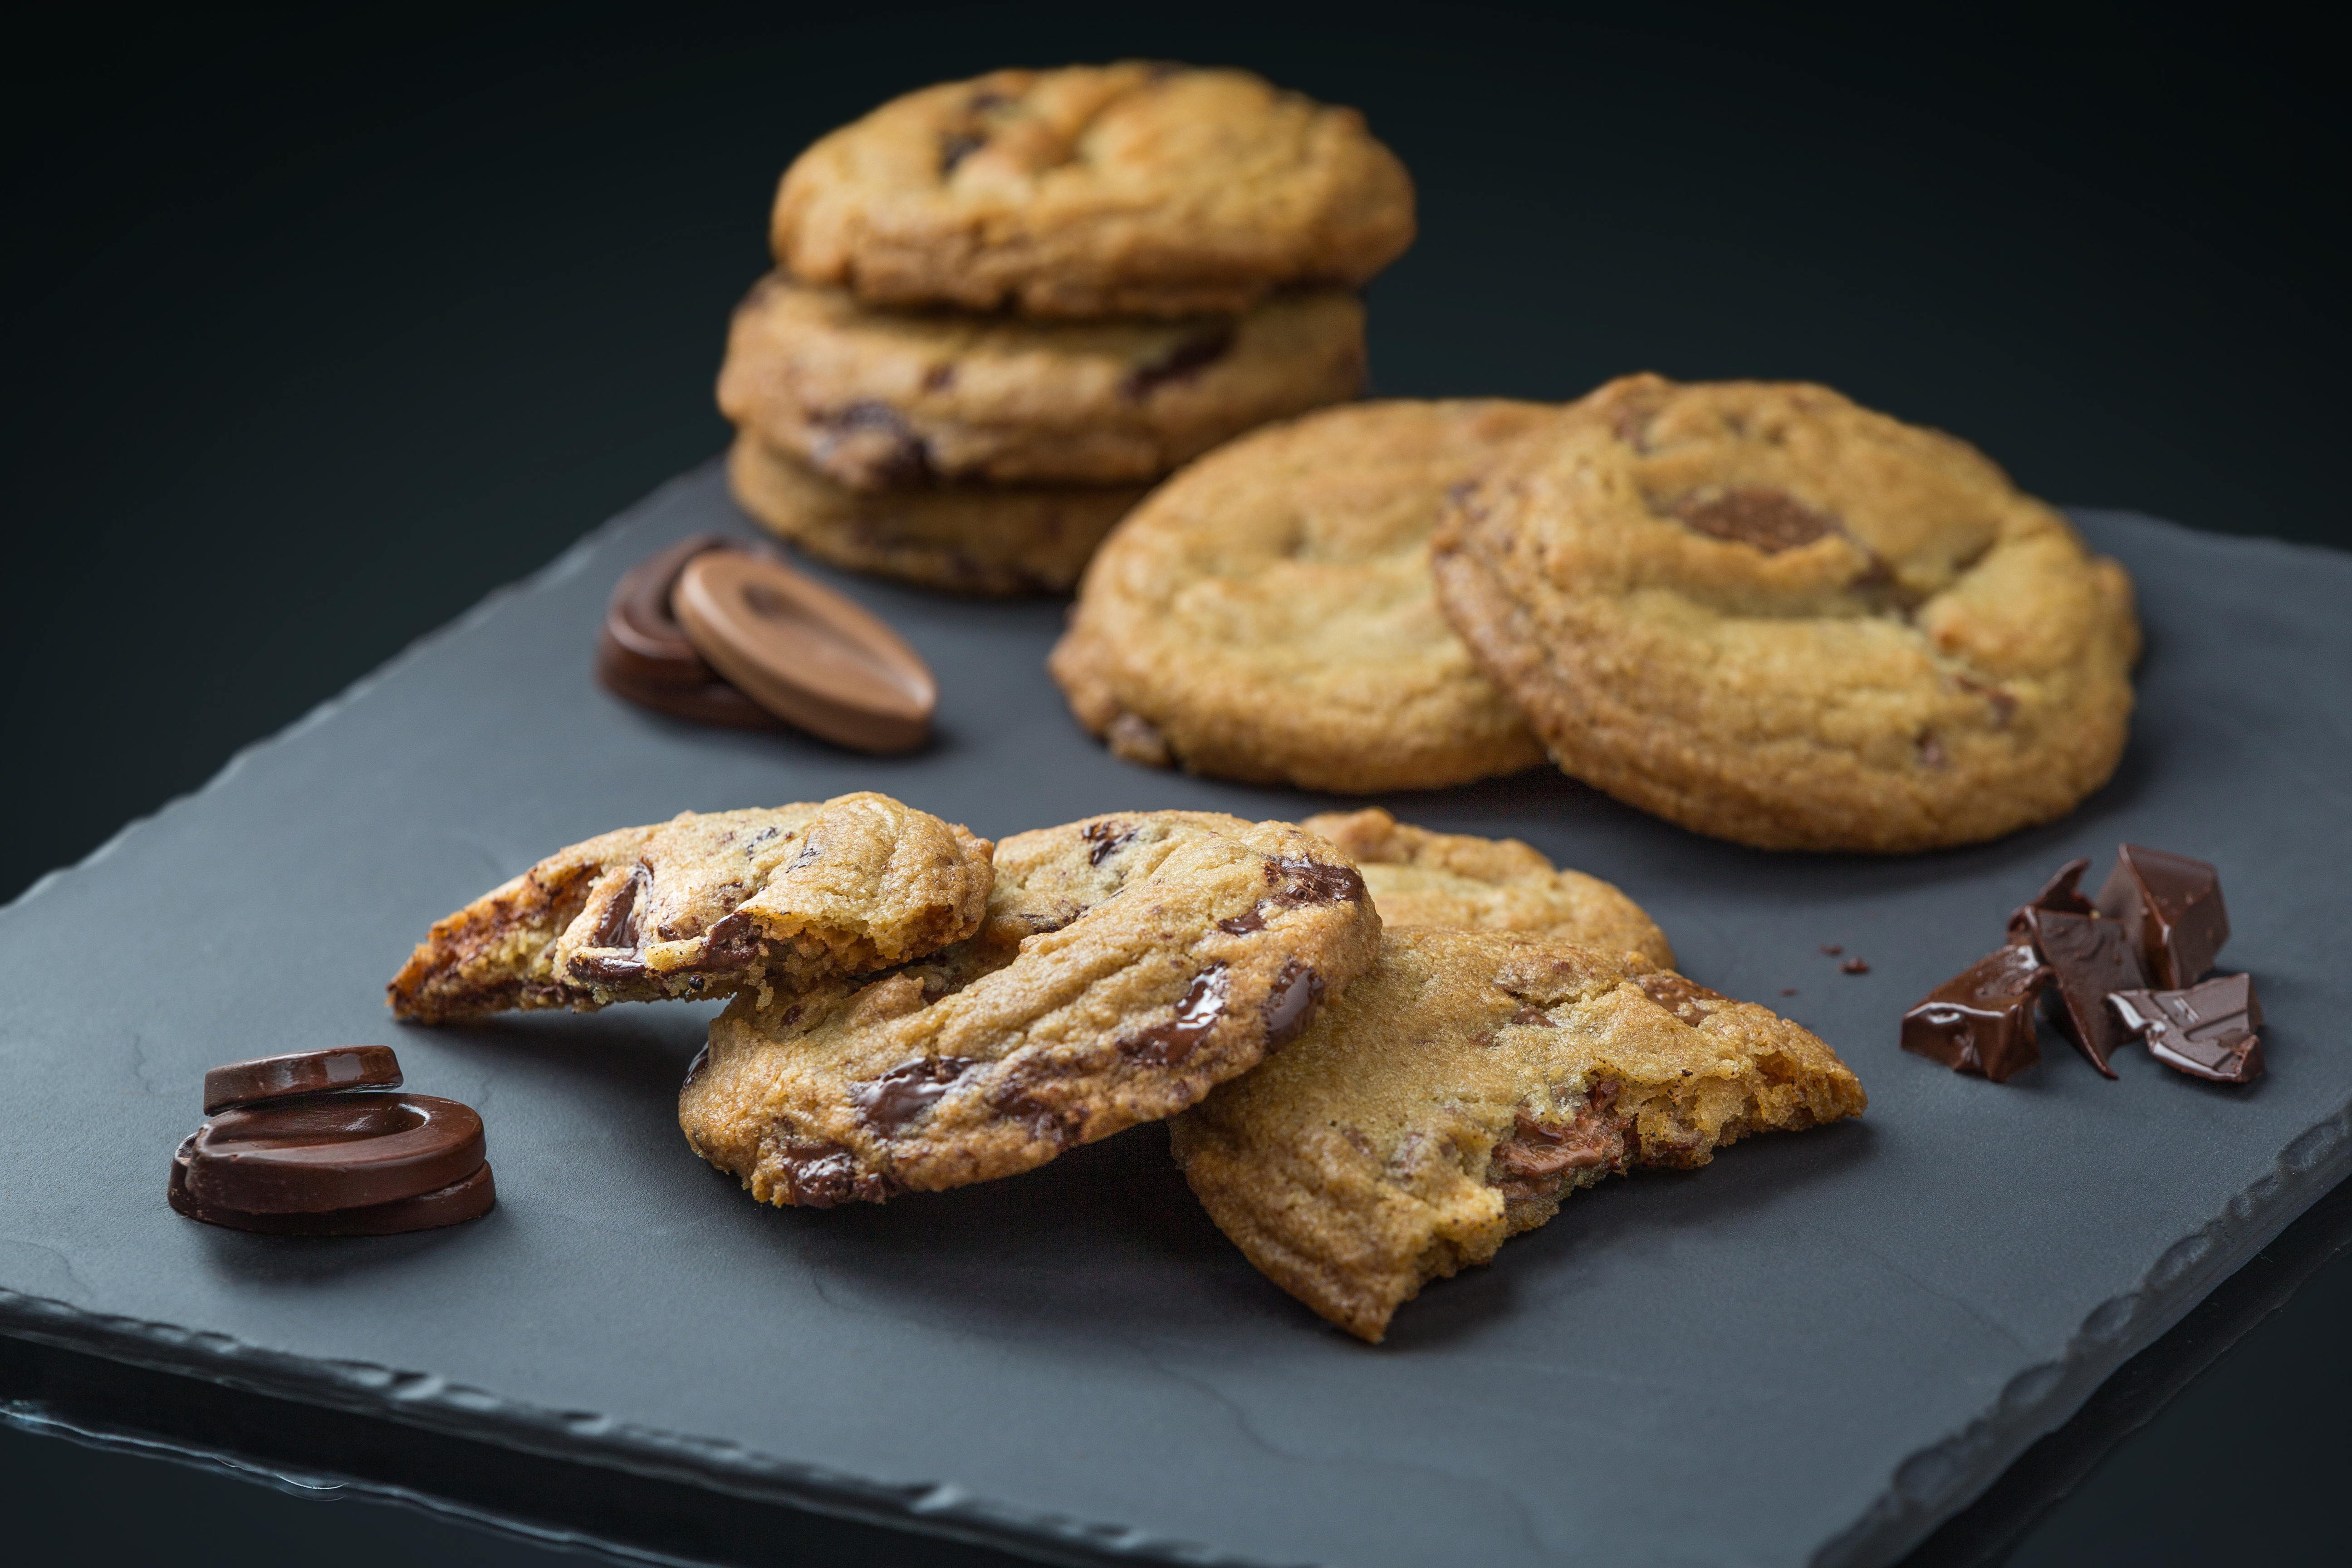 Best Chocolate for Chocolate Chip Cookies